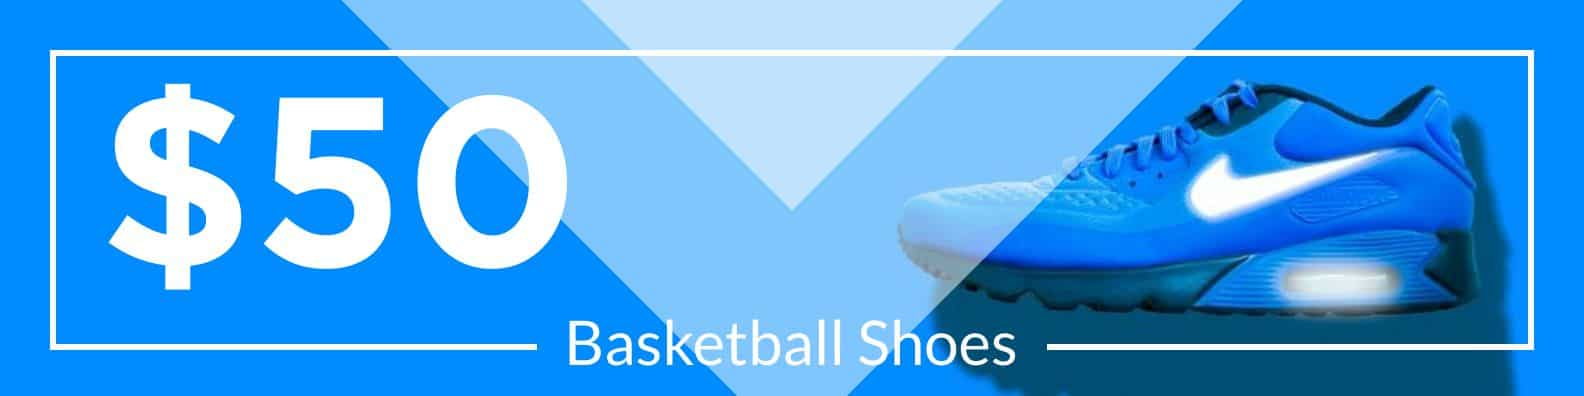 How To Choose The Best Basketball Shoes Under $50